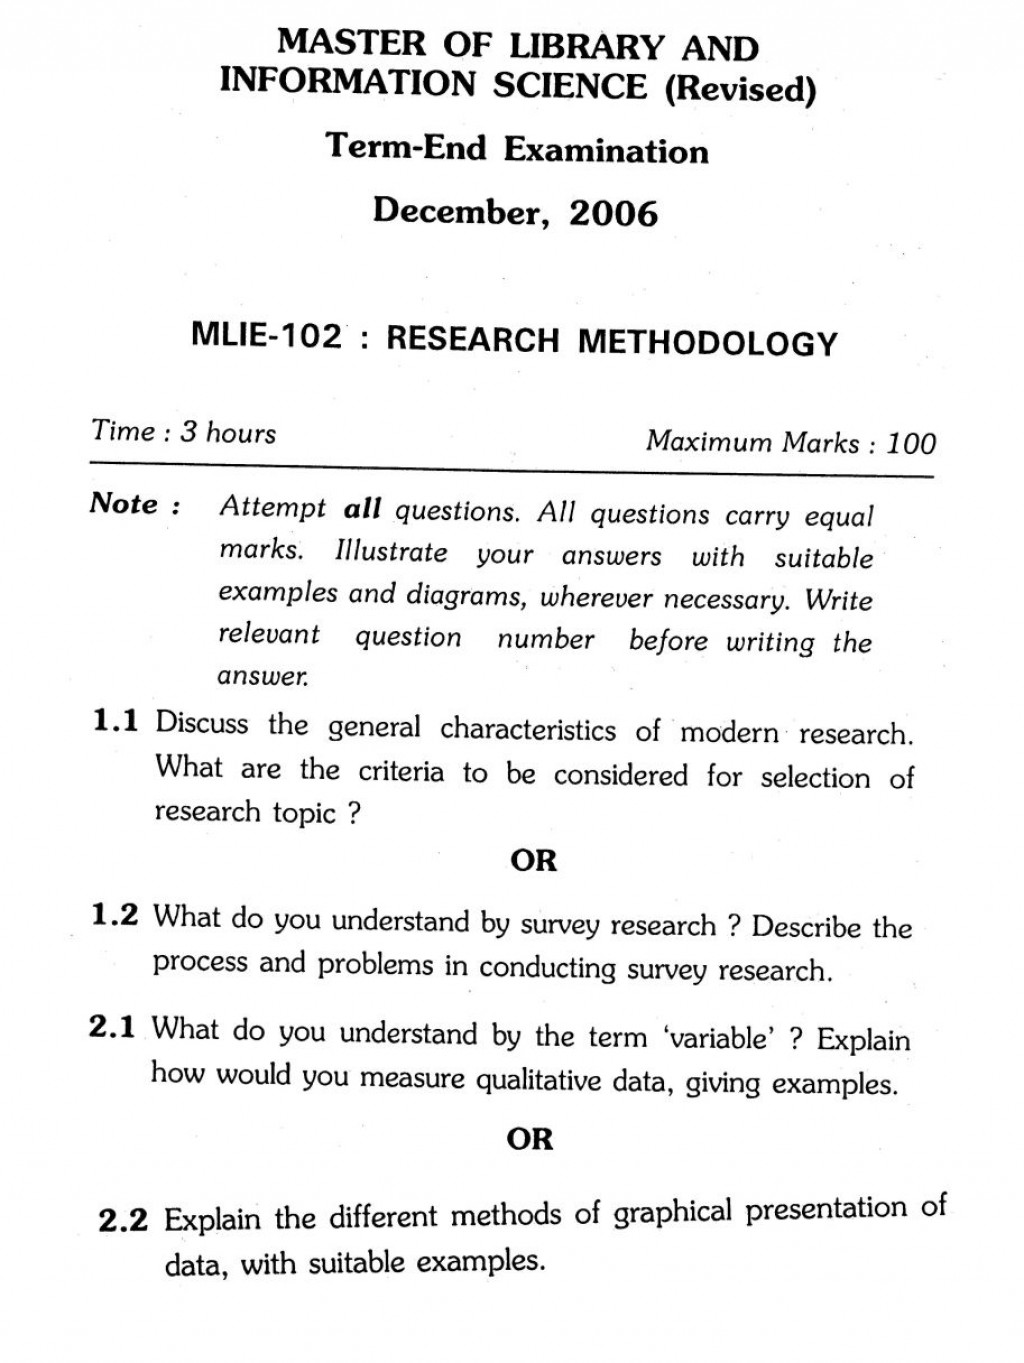 010 Methodology Research Paper Ignou Master Of Library And Information Science Previous Years Question Papers Remarkable Topics Pattern Exam Pdf Large